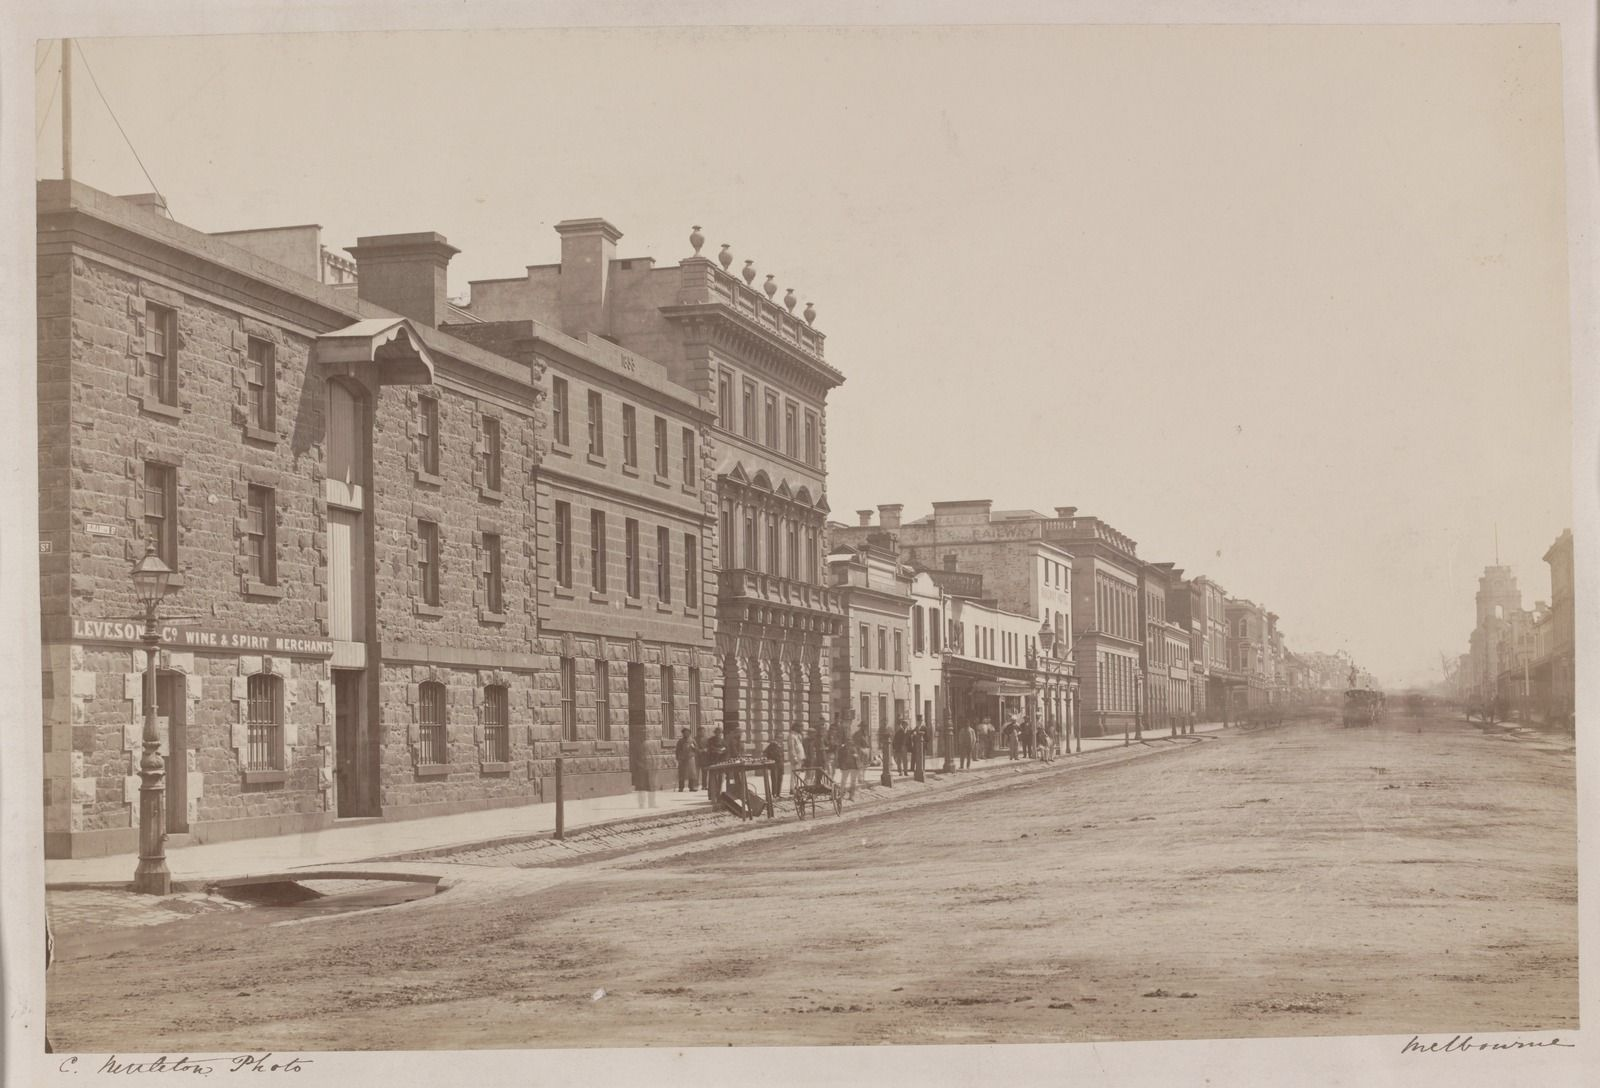 Elizabeth St, Melbourne, west side, looking north from